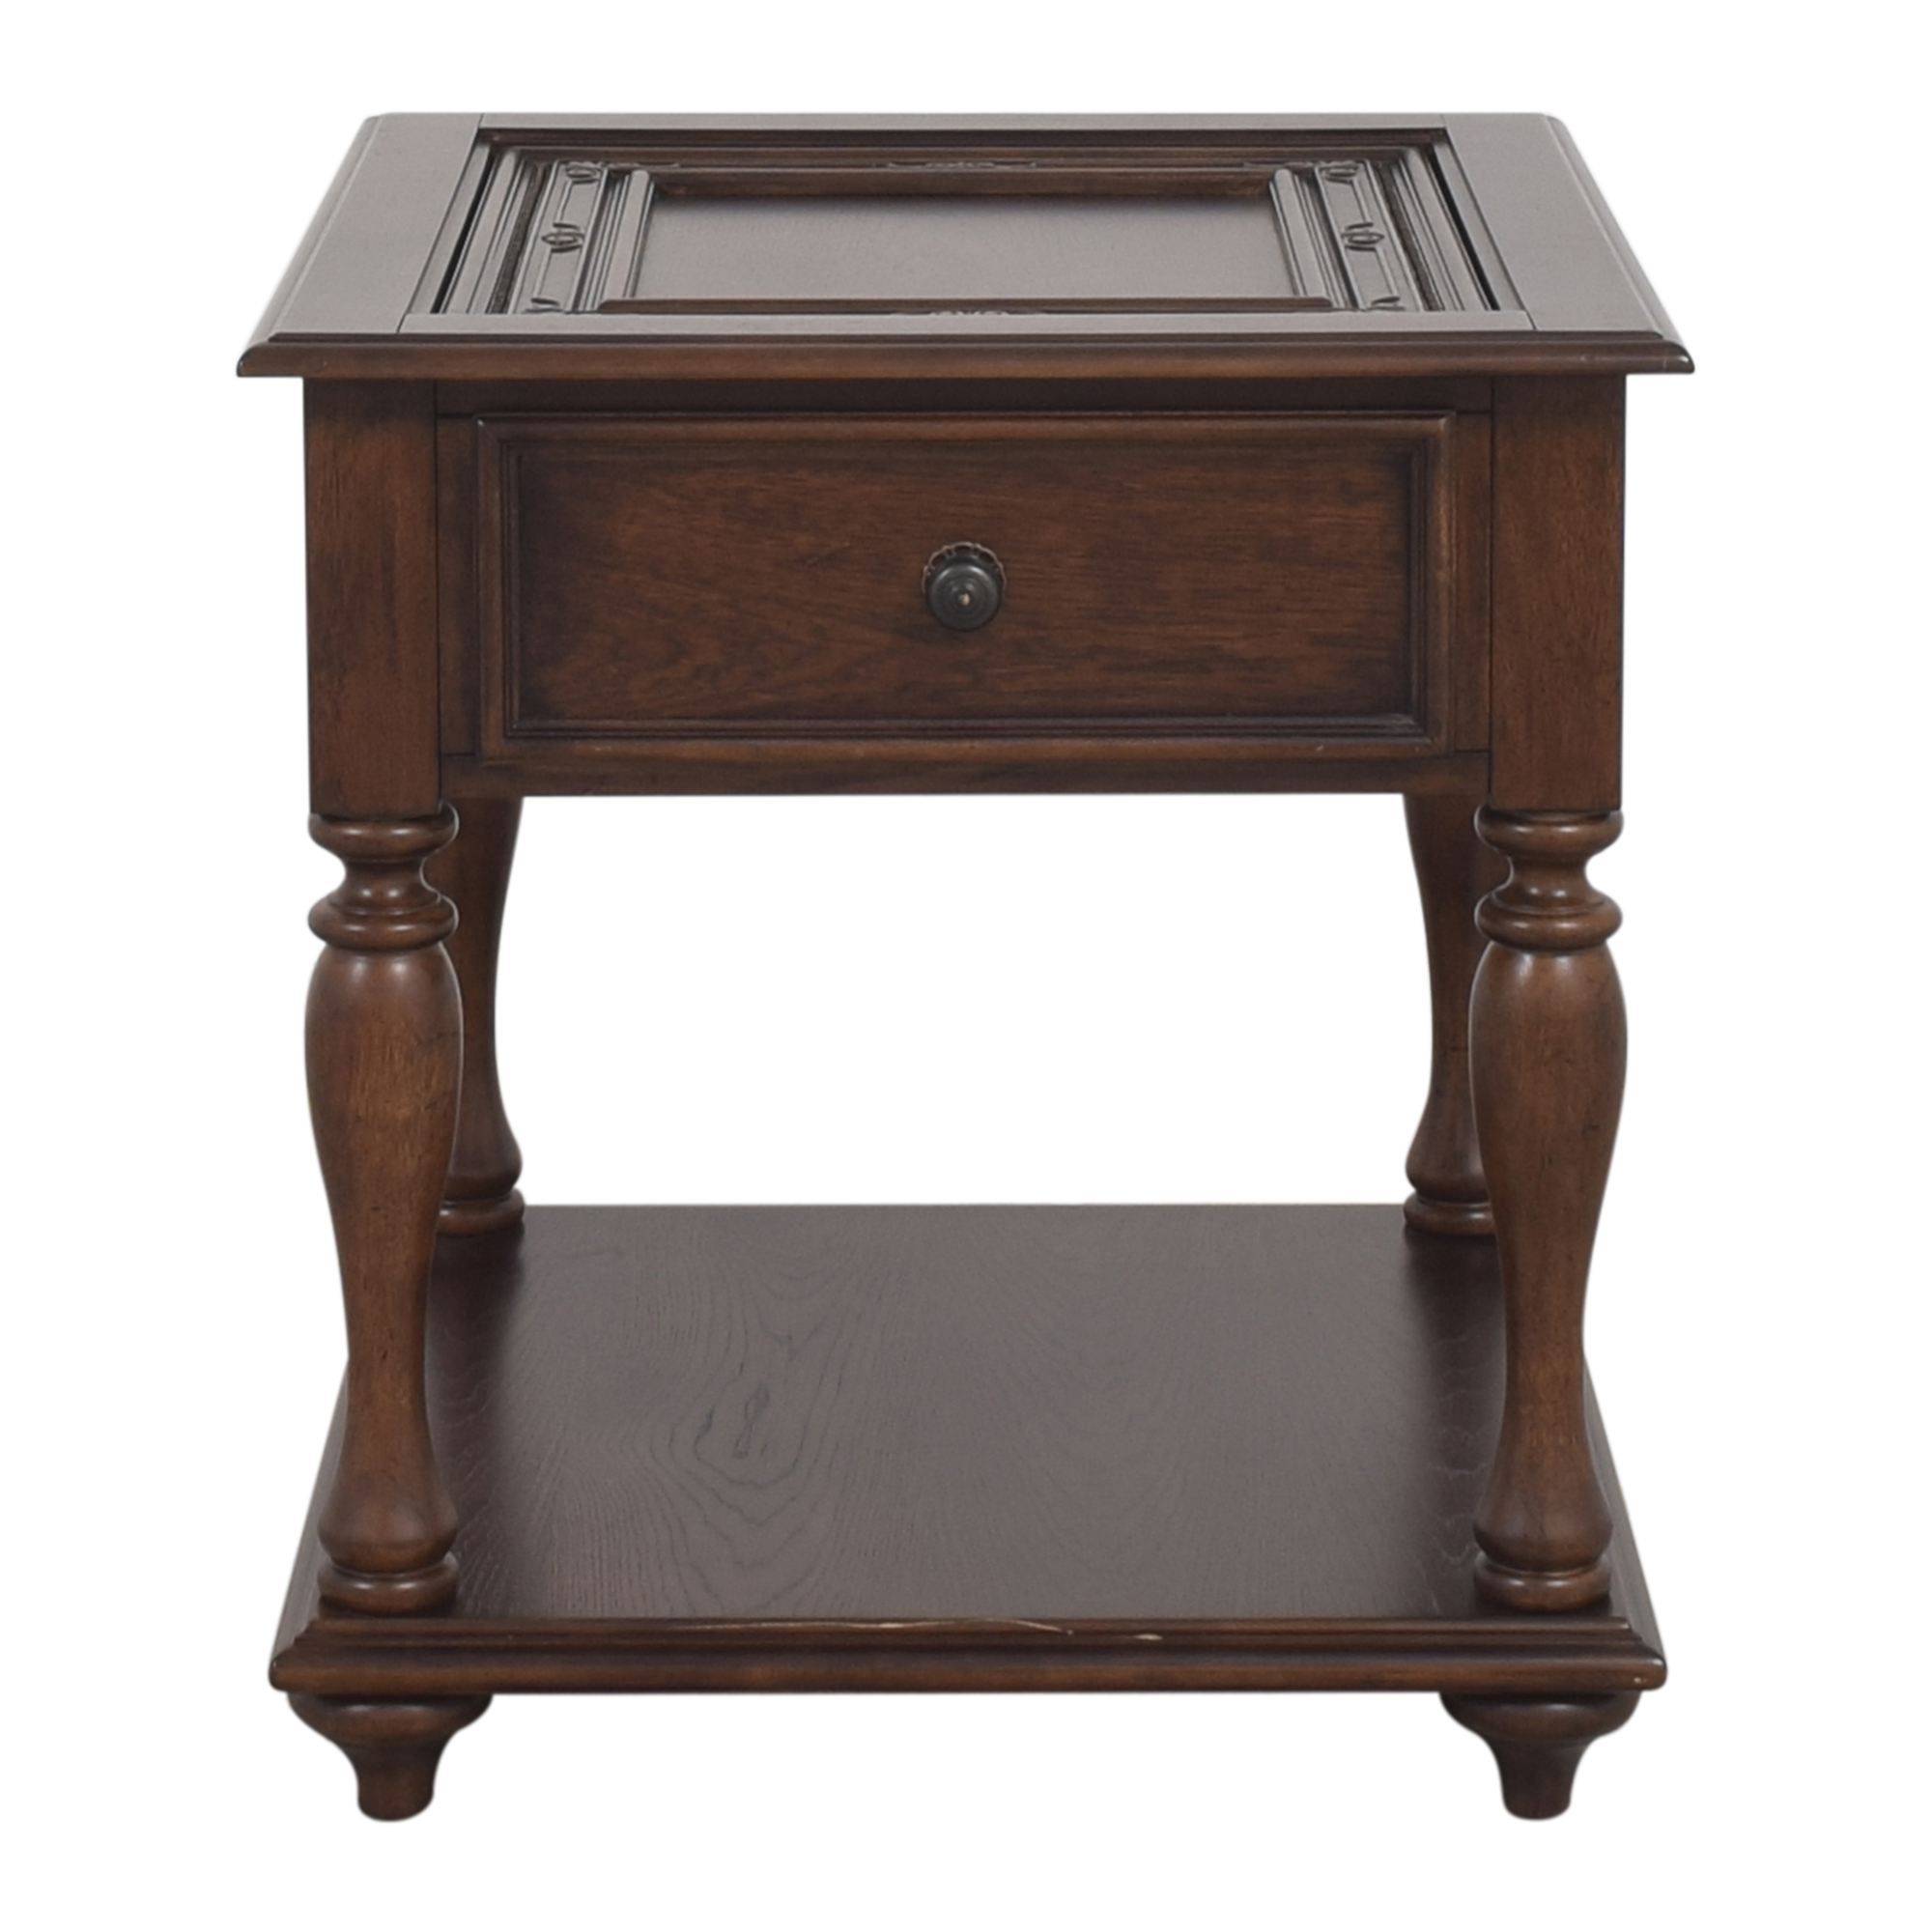 Single Drawer End Table / Tables